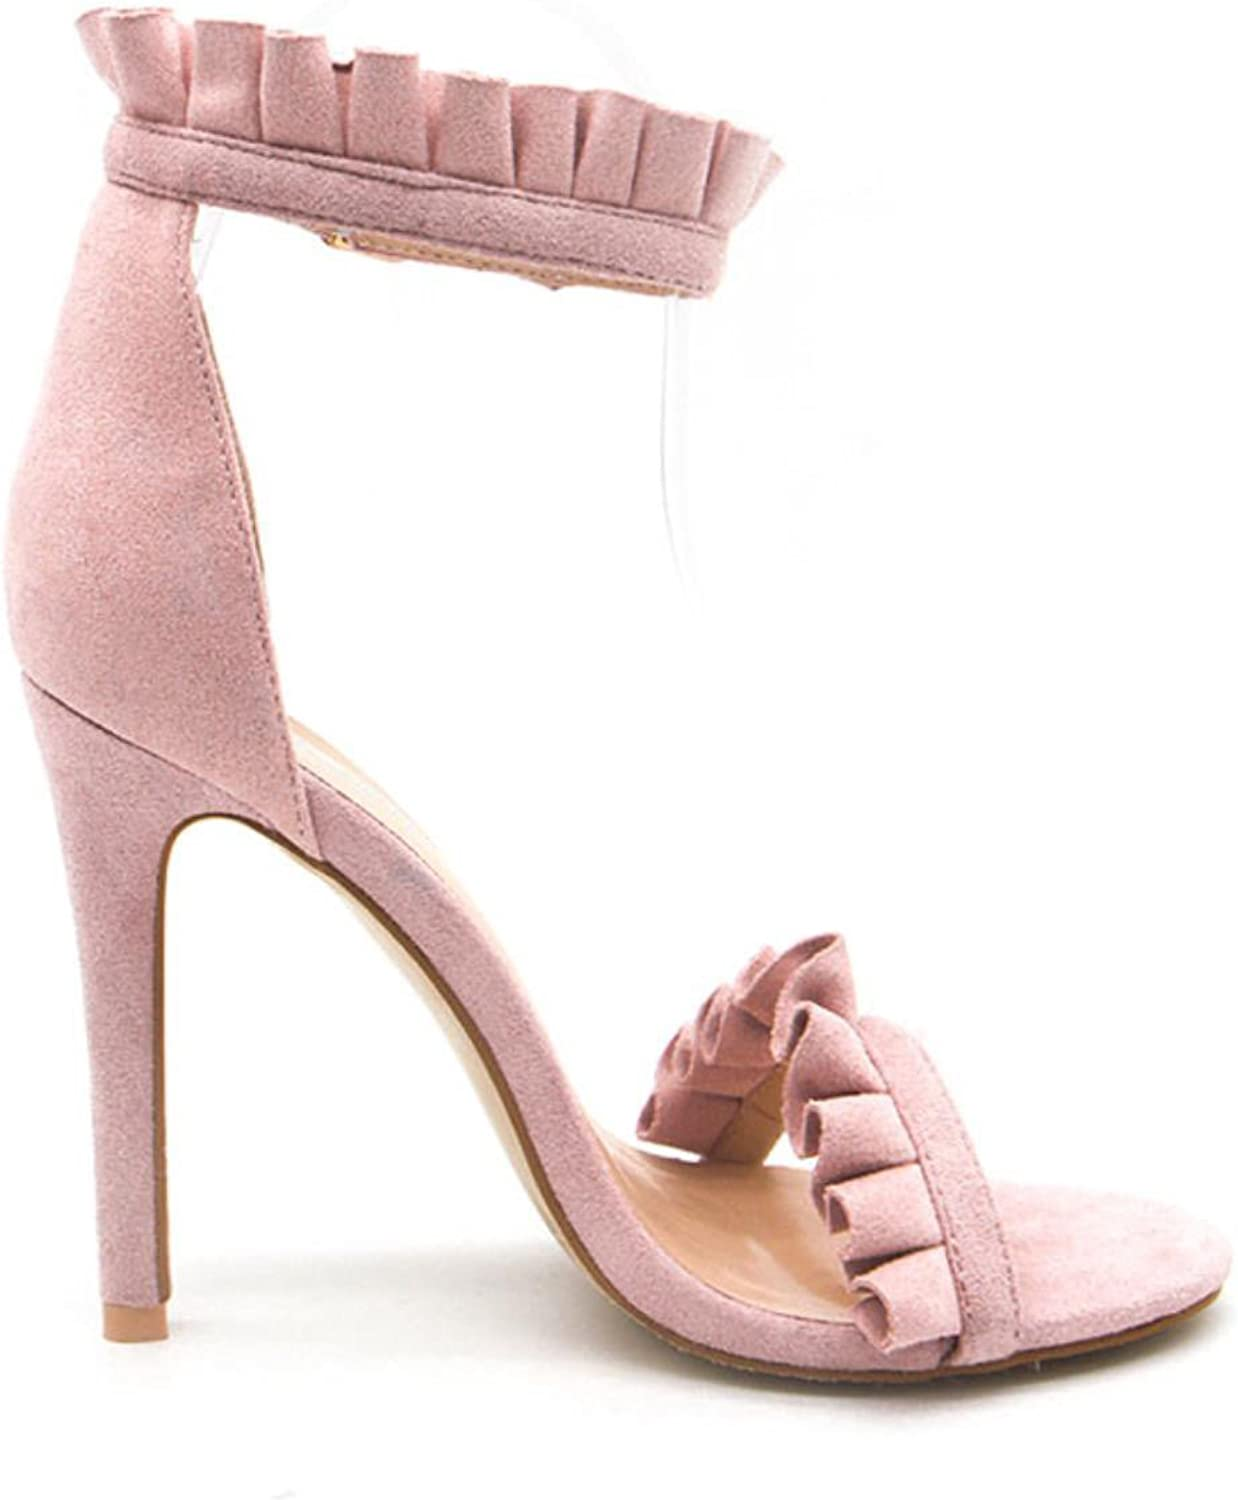 Buckle Ankle Strap High Heels Fashion Summer Sandals Party shoes Wedding Thin Pumps